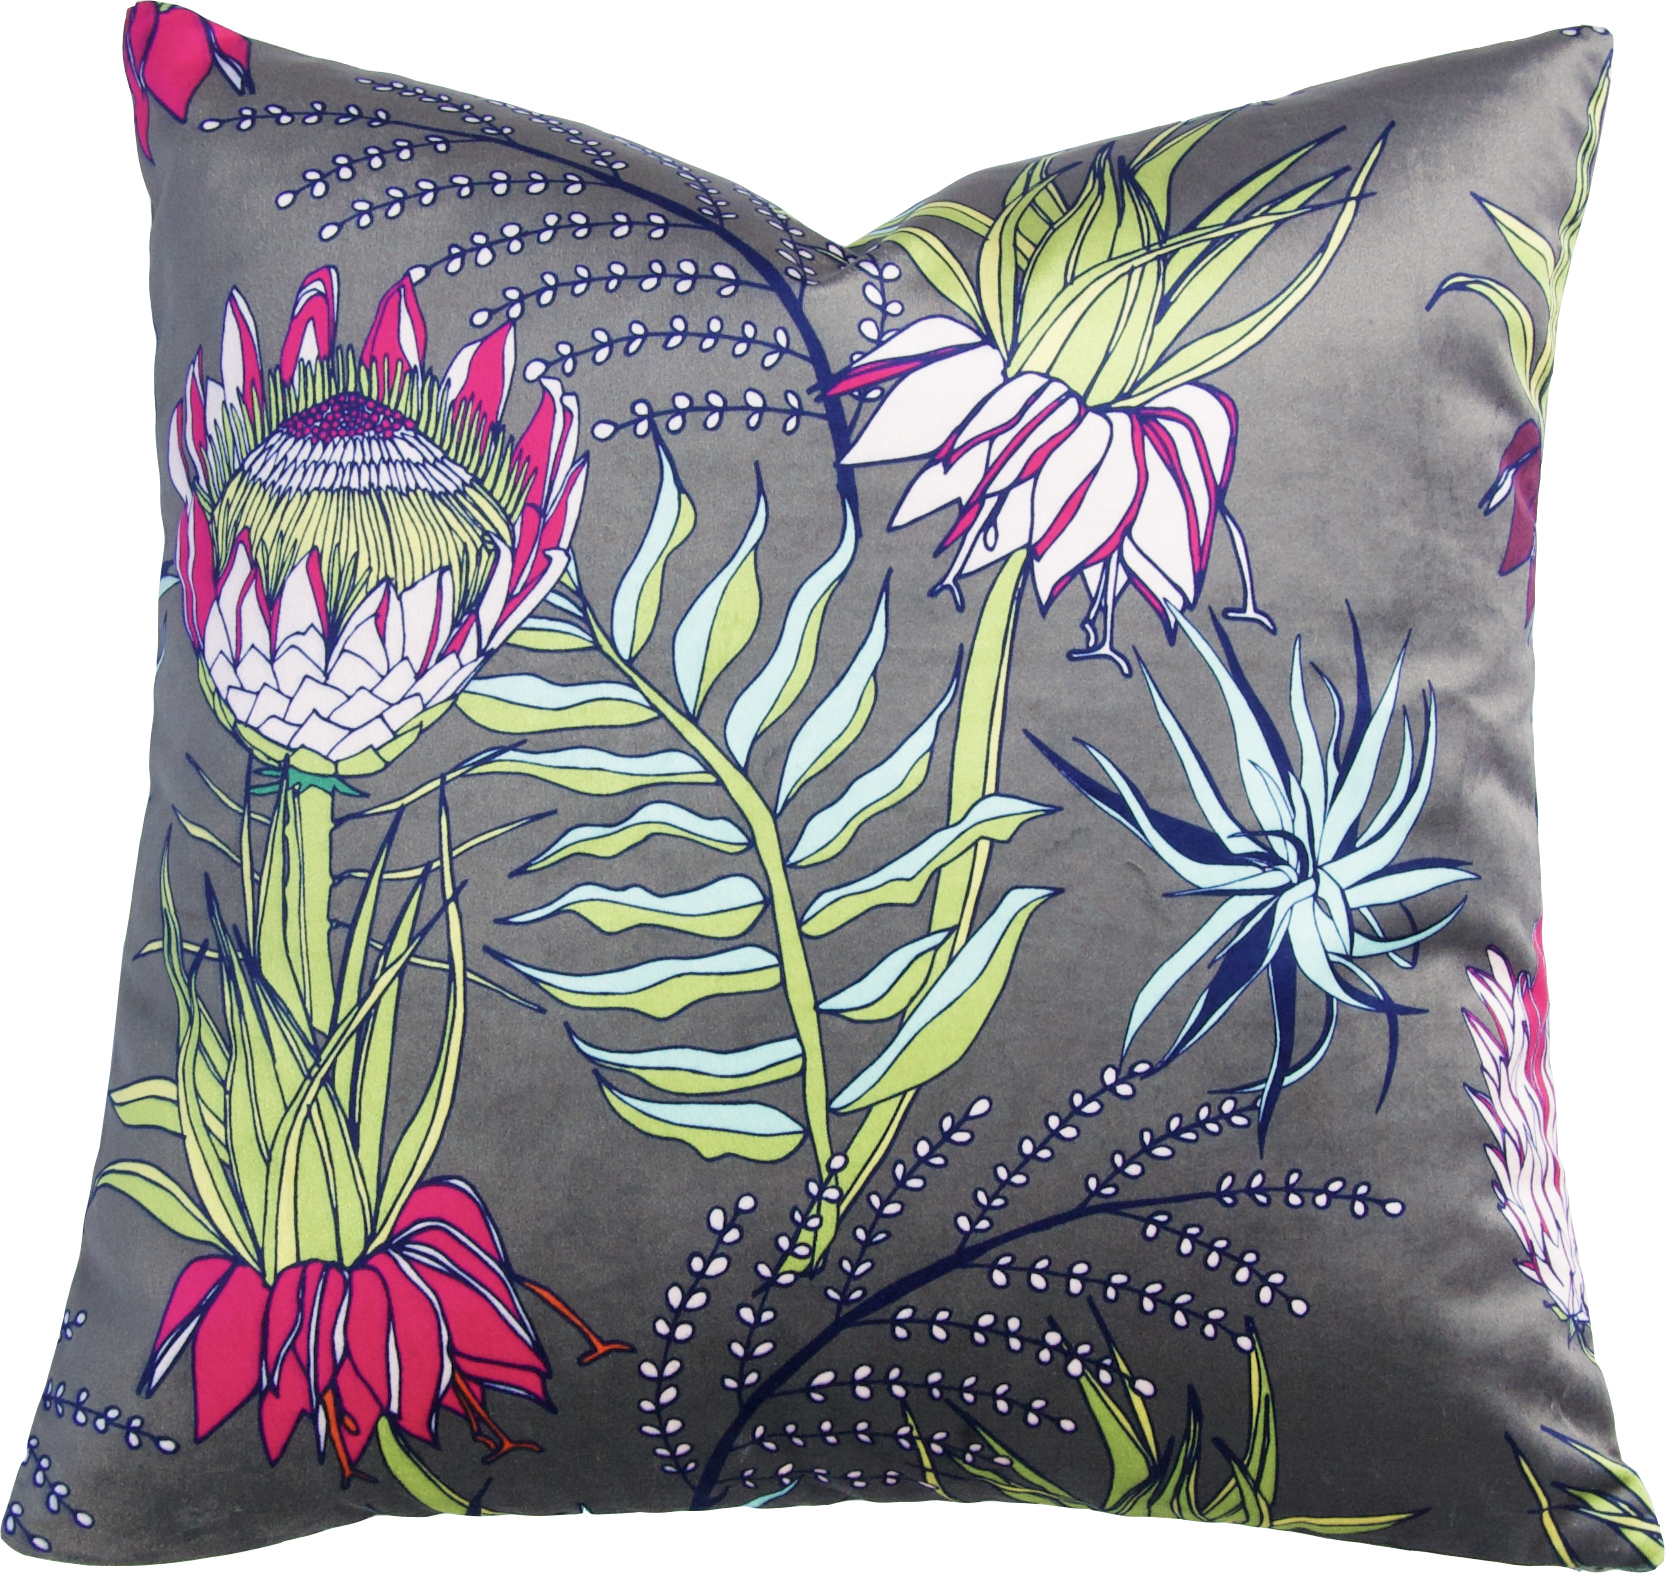 King Protea Pillow_Olive_Velvet II.jpg